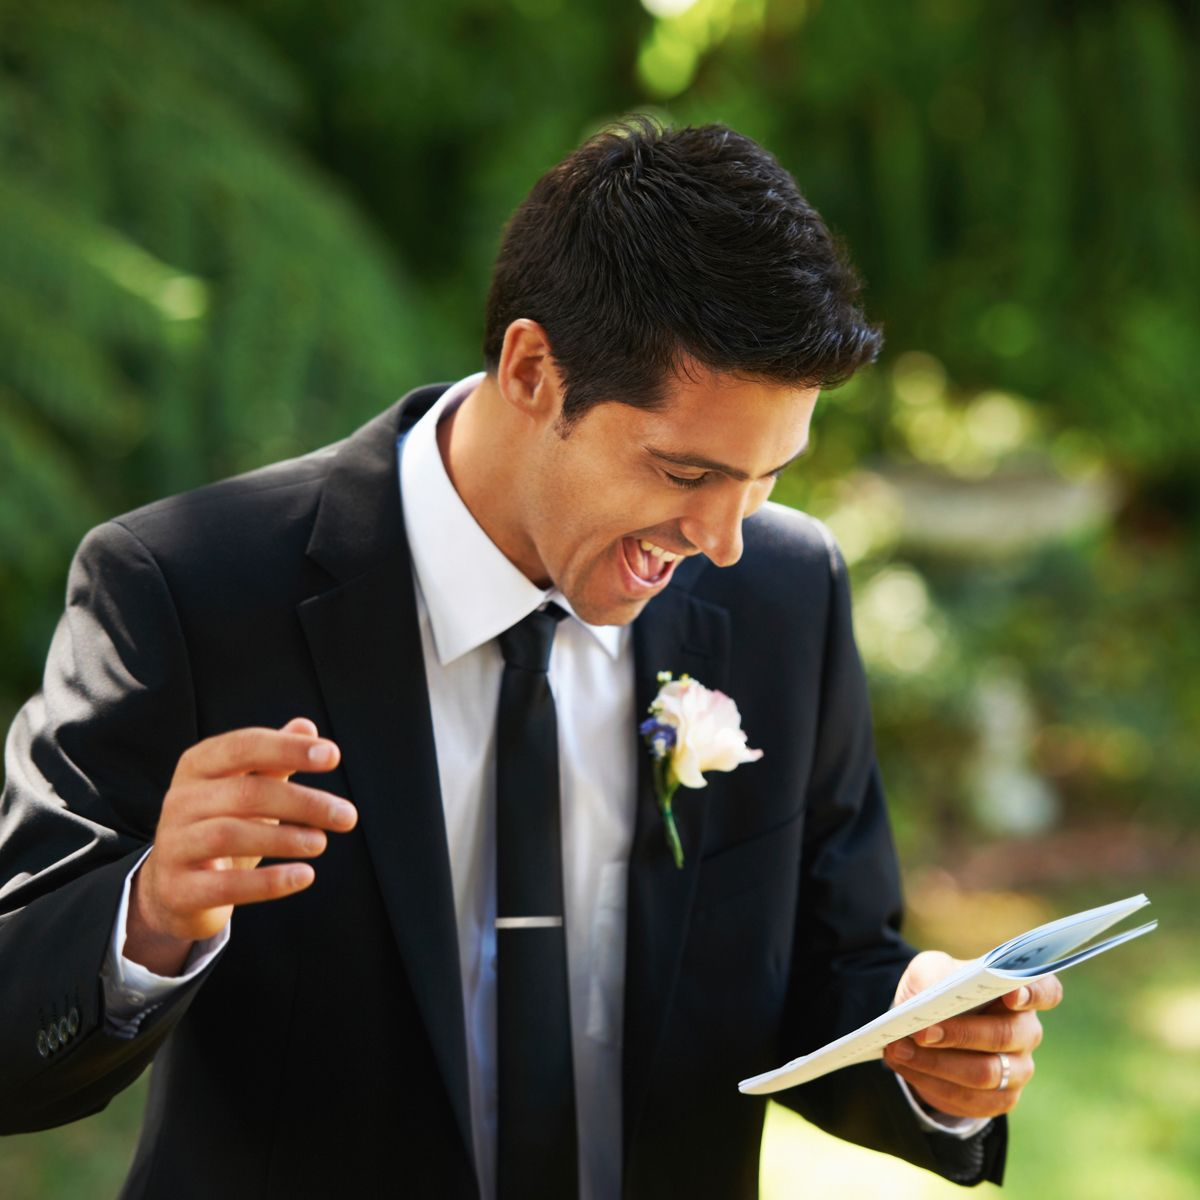 How To Give A Memorable Wedding Toast